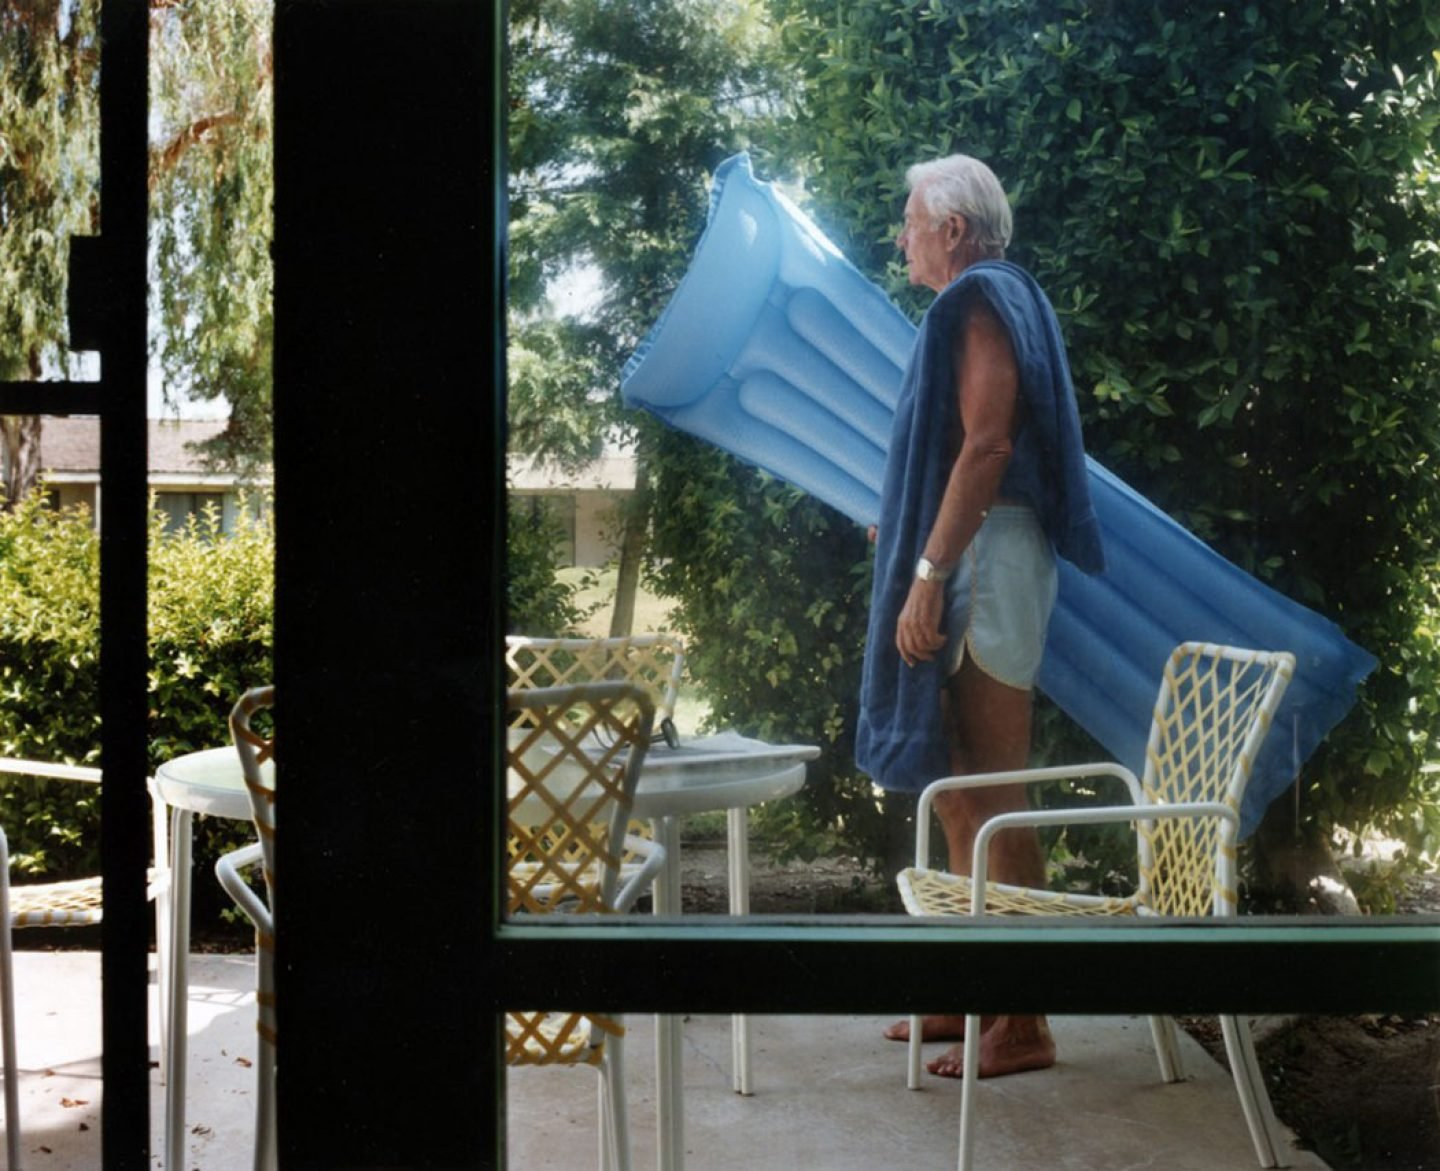 Photography_PicturesFromHome_LarrySultan_20